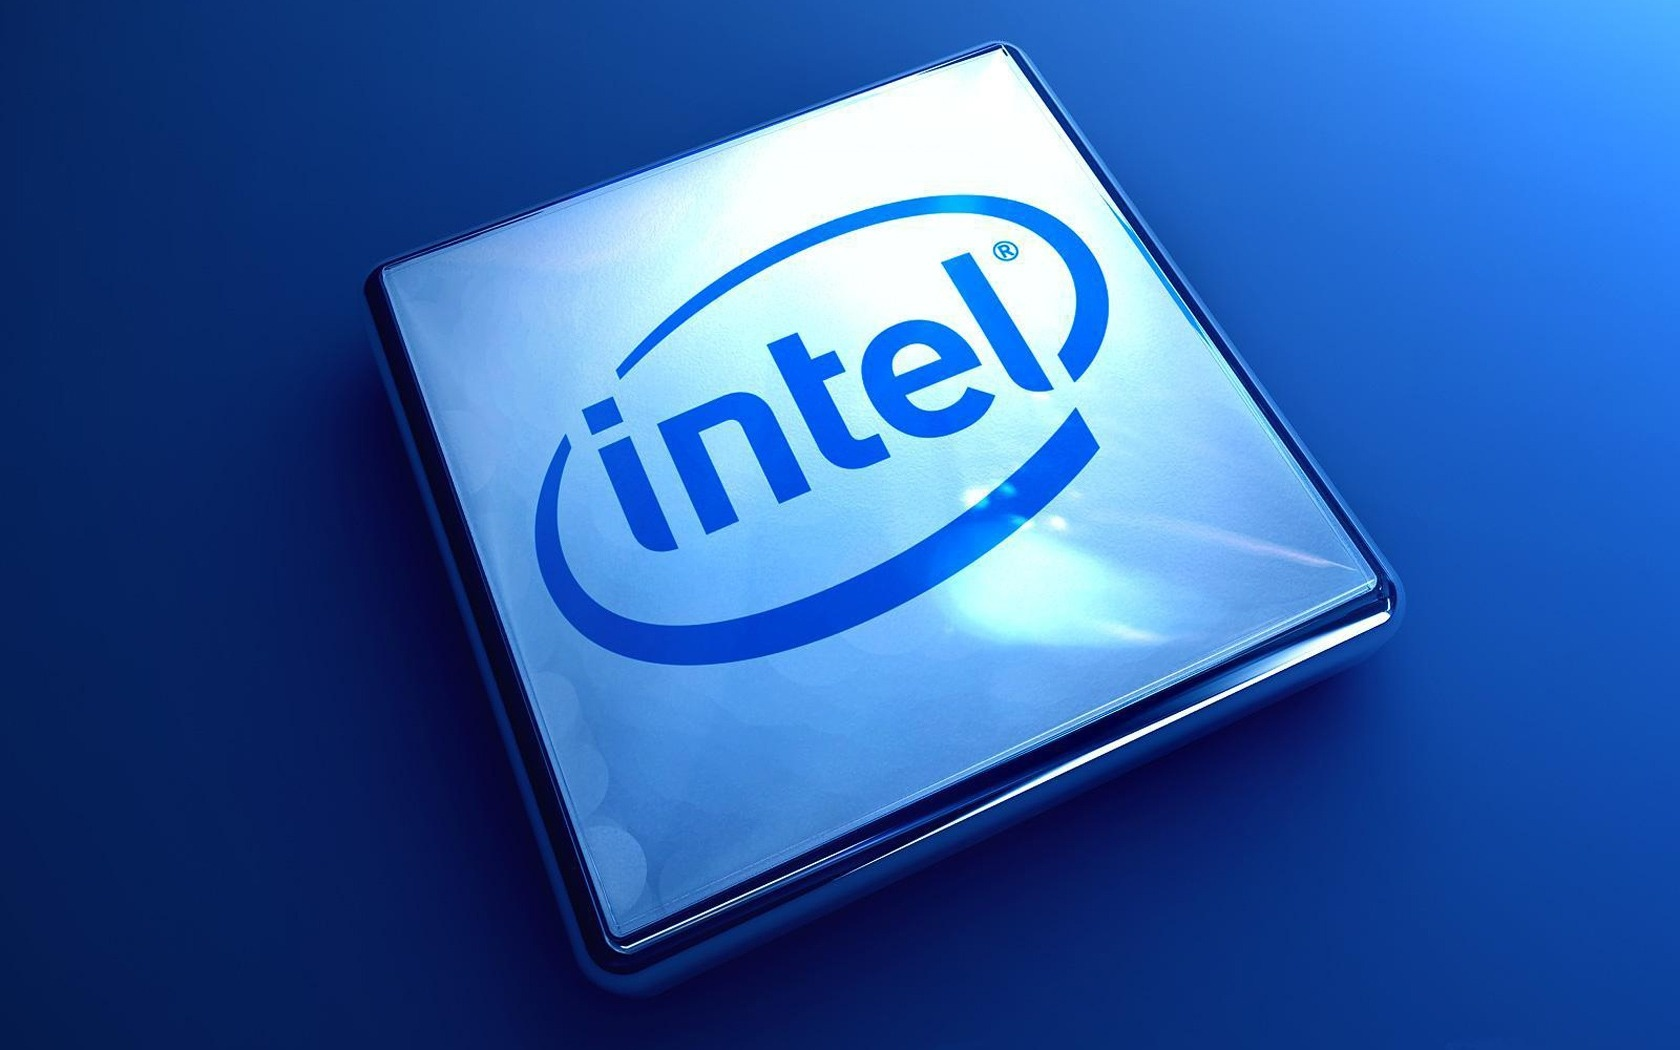 5 reasons why Intel is focusing its new mobile processor on China